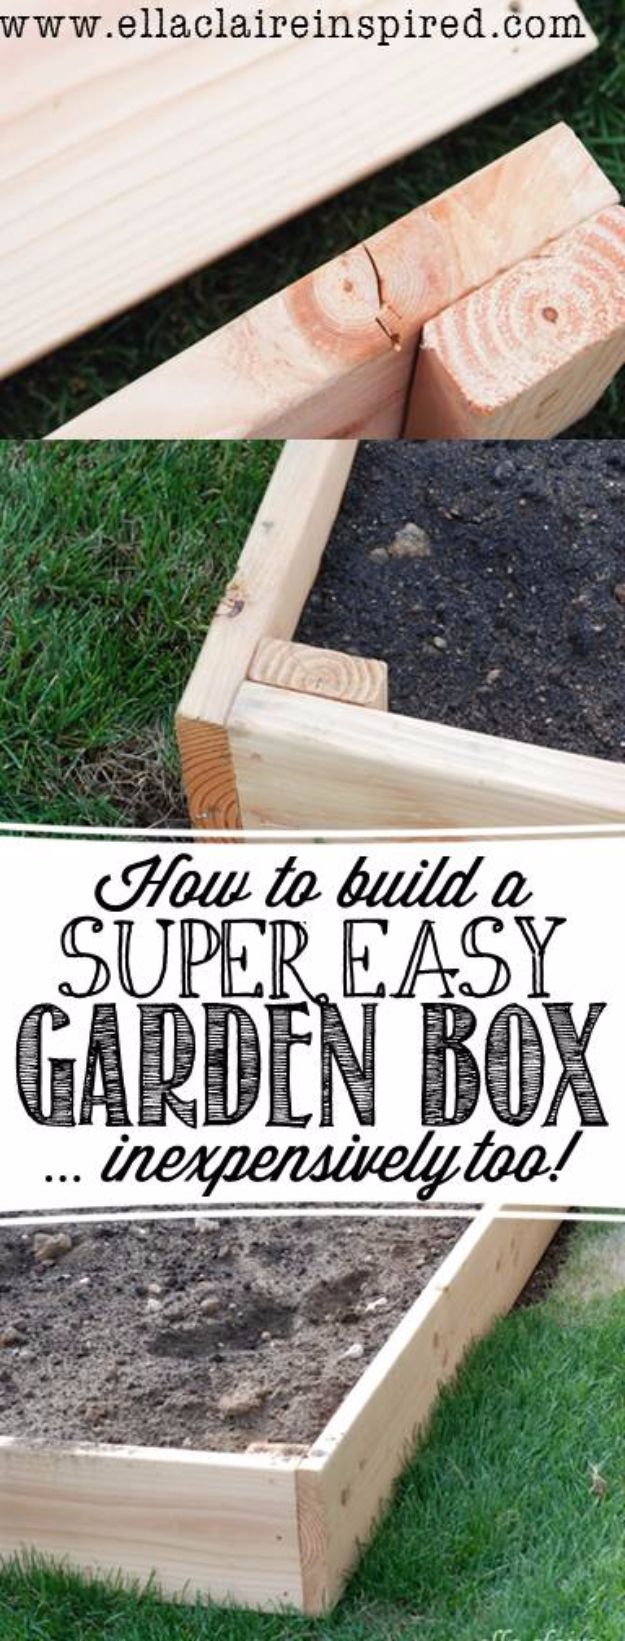 DIY Garden Beds - Super Easy Garden Box - Easy Gardening Ideas for Raised Beds and Planter Boxes - Free Plans, Tutorials and Step by Step Tutorials for Building and Landscaping Projects - Update Your Backyard and Gardens With These Cheap Do It Yourself Ideas http://diyjoy.com/diy-garden-beds